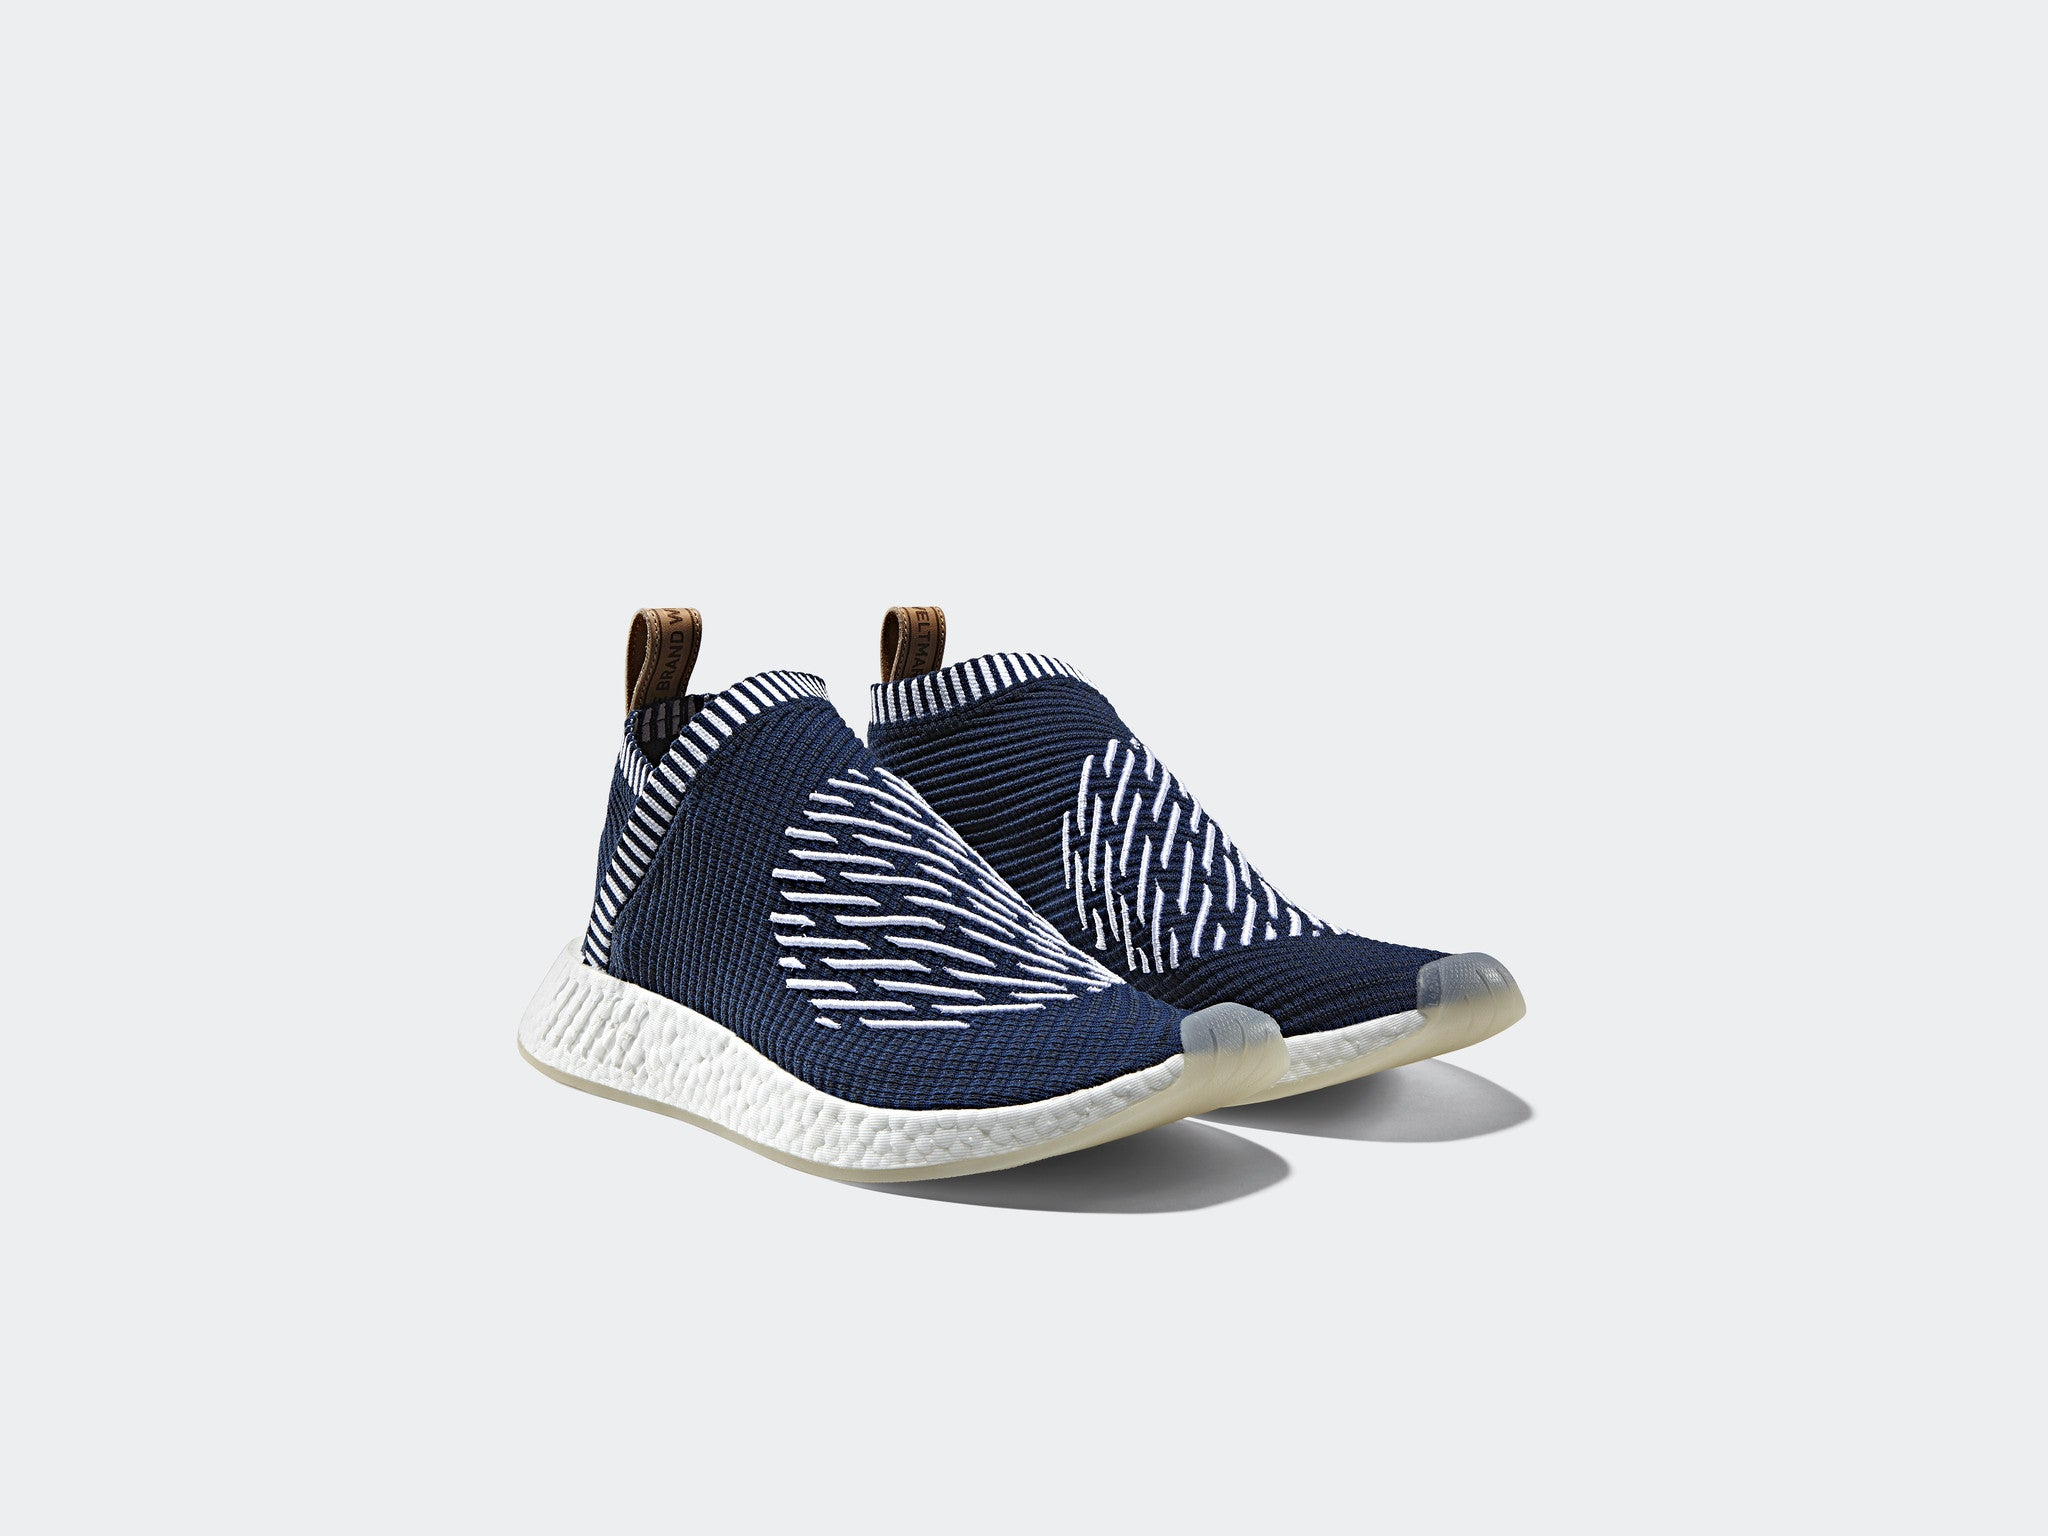 d81075d53ec1 Premium brown leather accents hit the heel tab with  Brand With The Three  Stripes  wording on the back. The restructured full-length Boost midsole  unit even ...